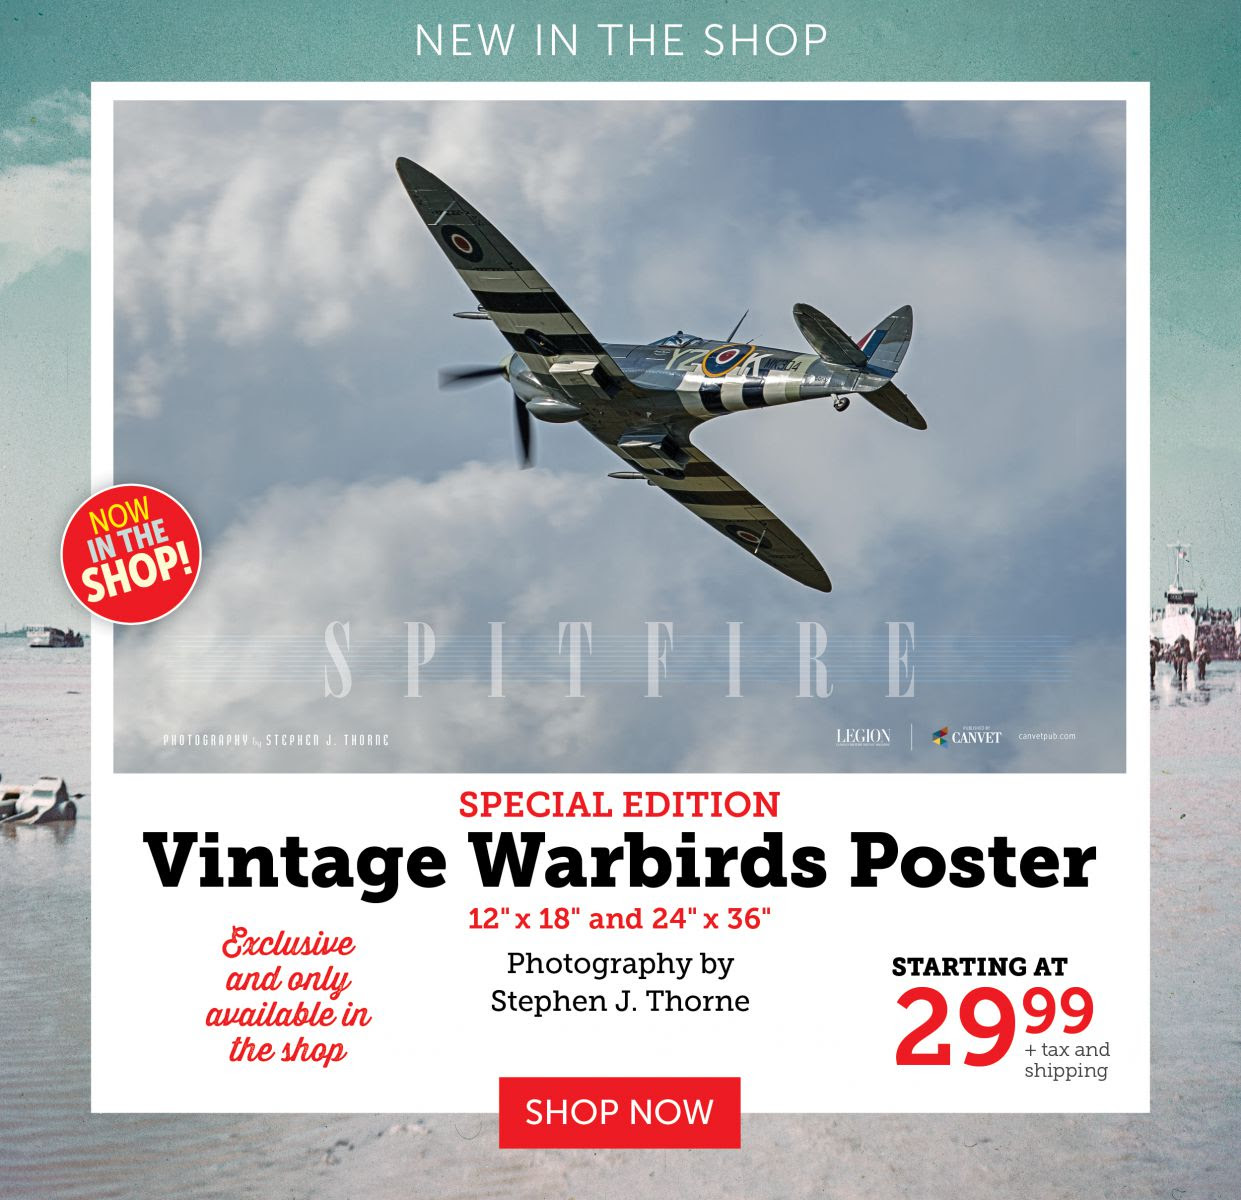 Vintage Warbirds Poster - Spitfire Version 2